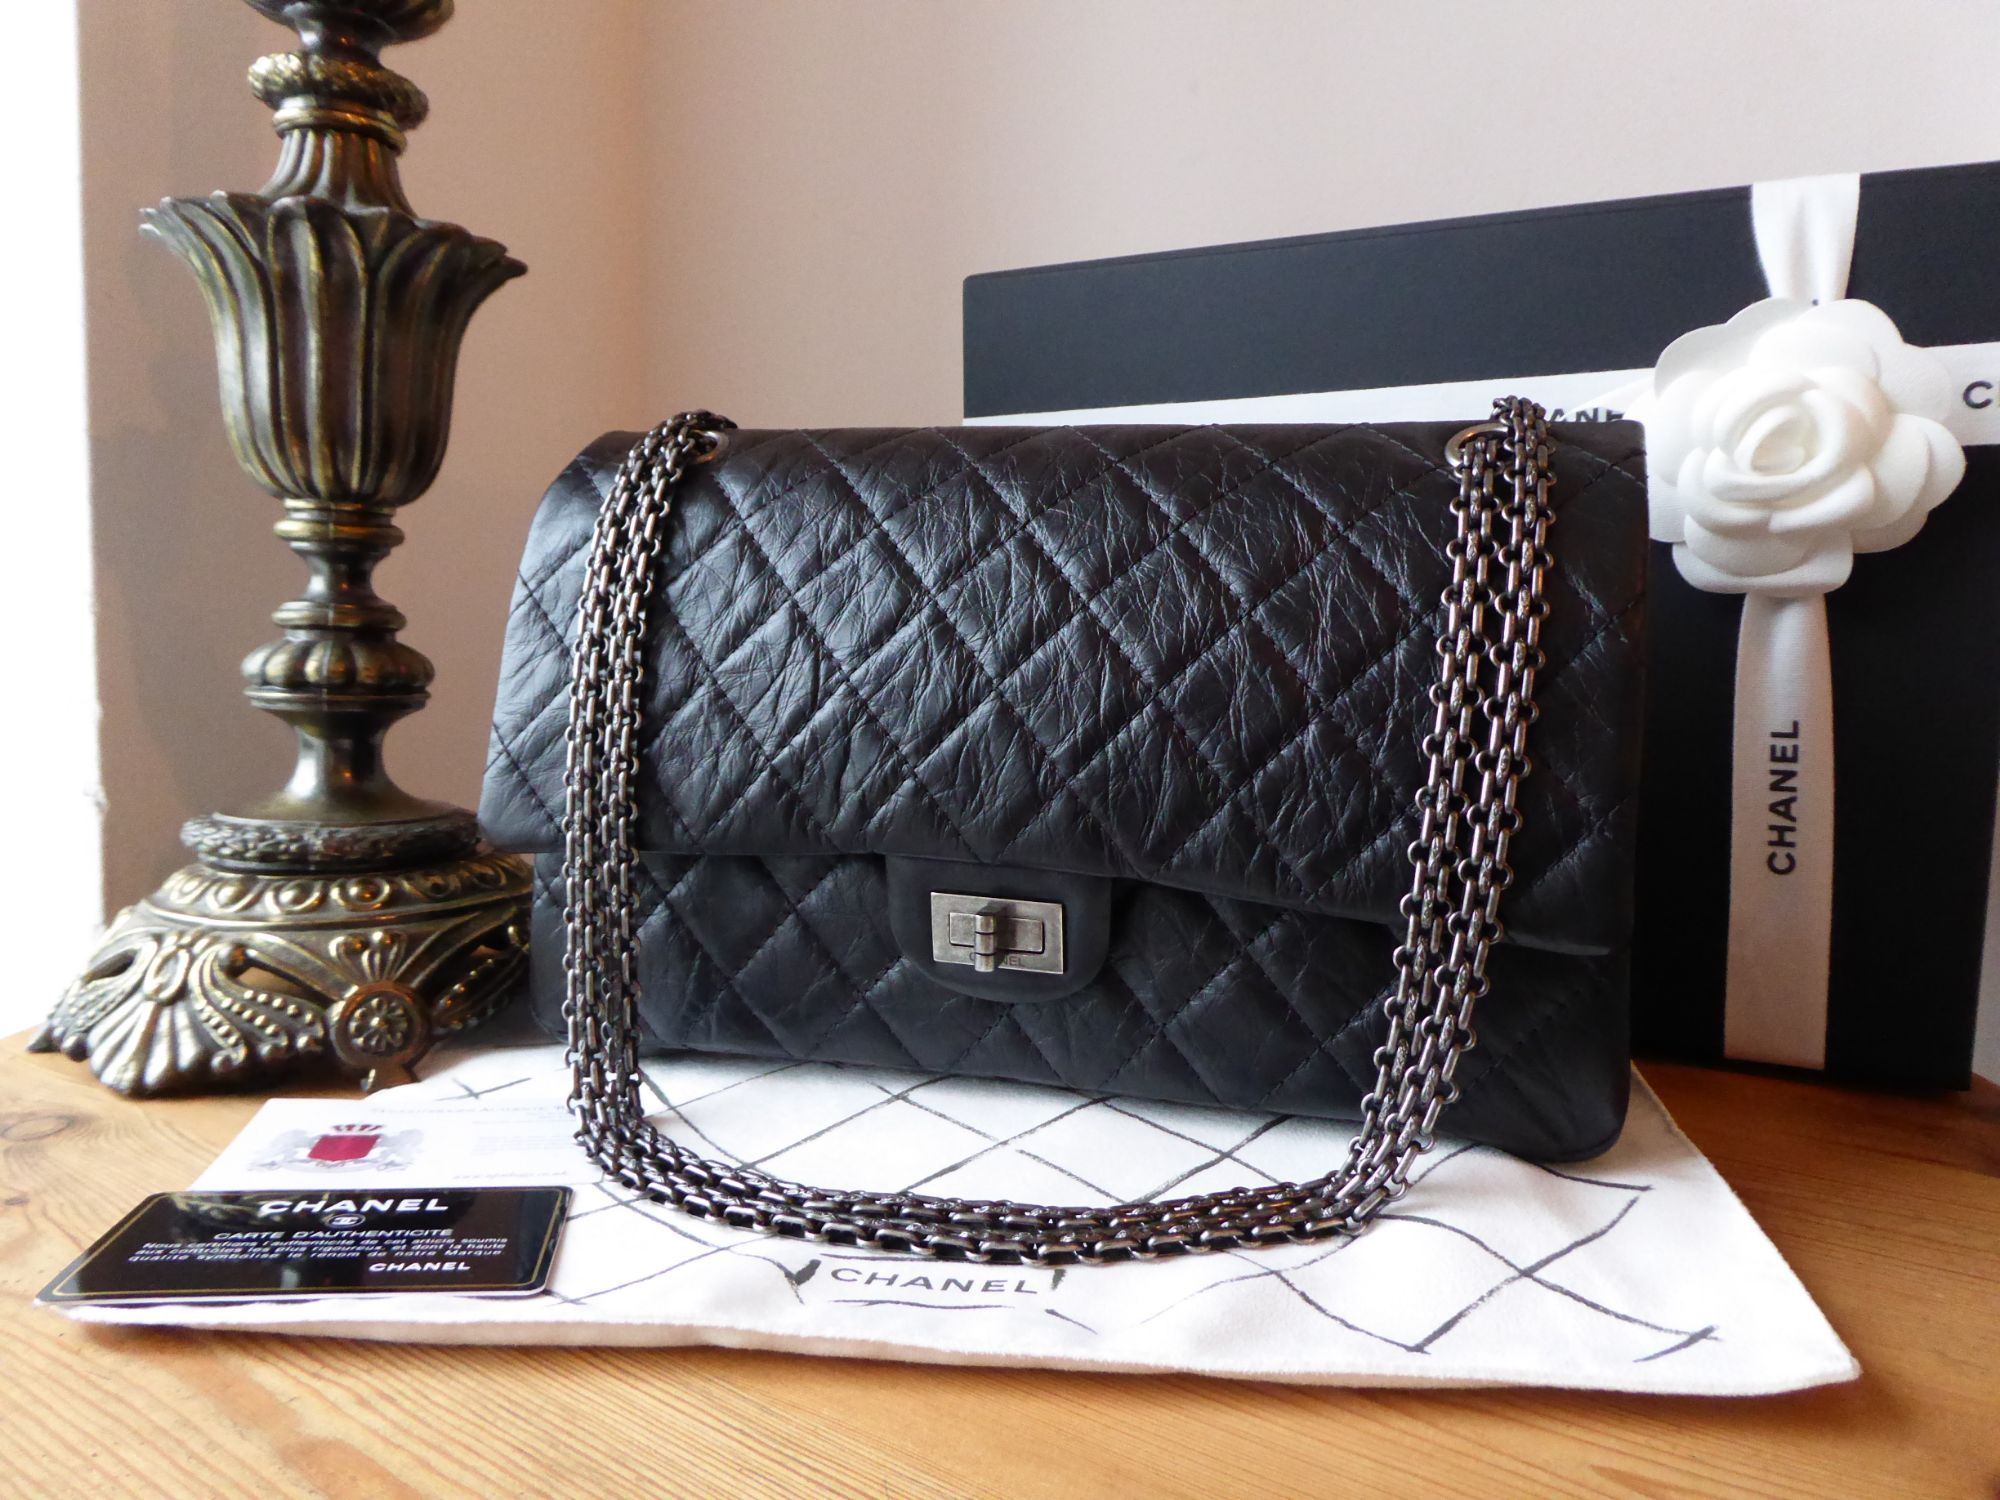 c45834666e1d Chanel 226 Reissue Mademoiselle 2.55 Flap in Distressed Black ...